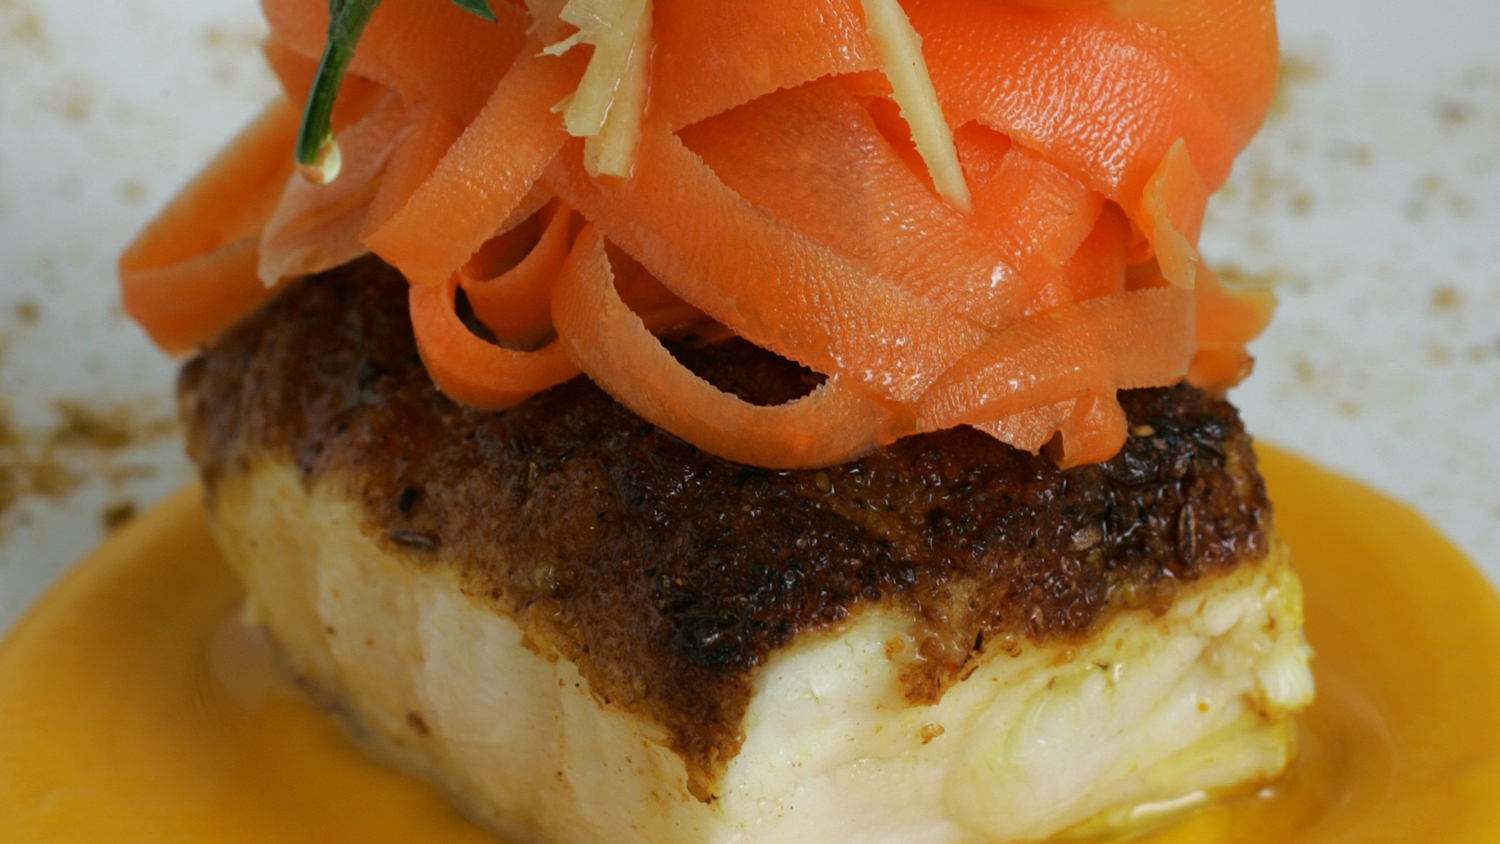 Monkfish served on a carrot and orange purée with a ginger and carrot salad